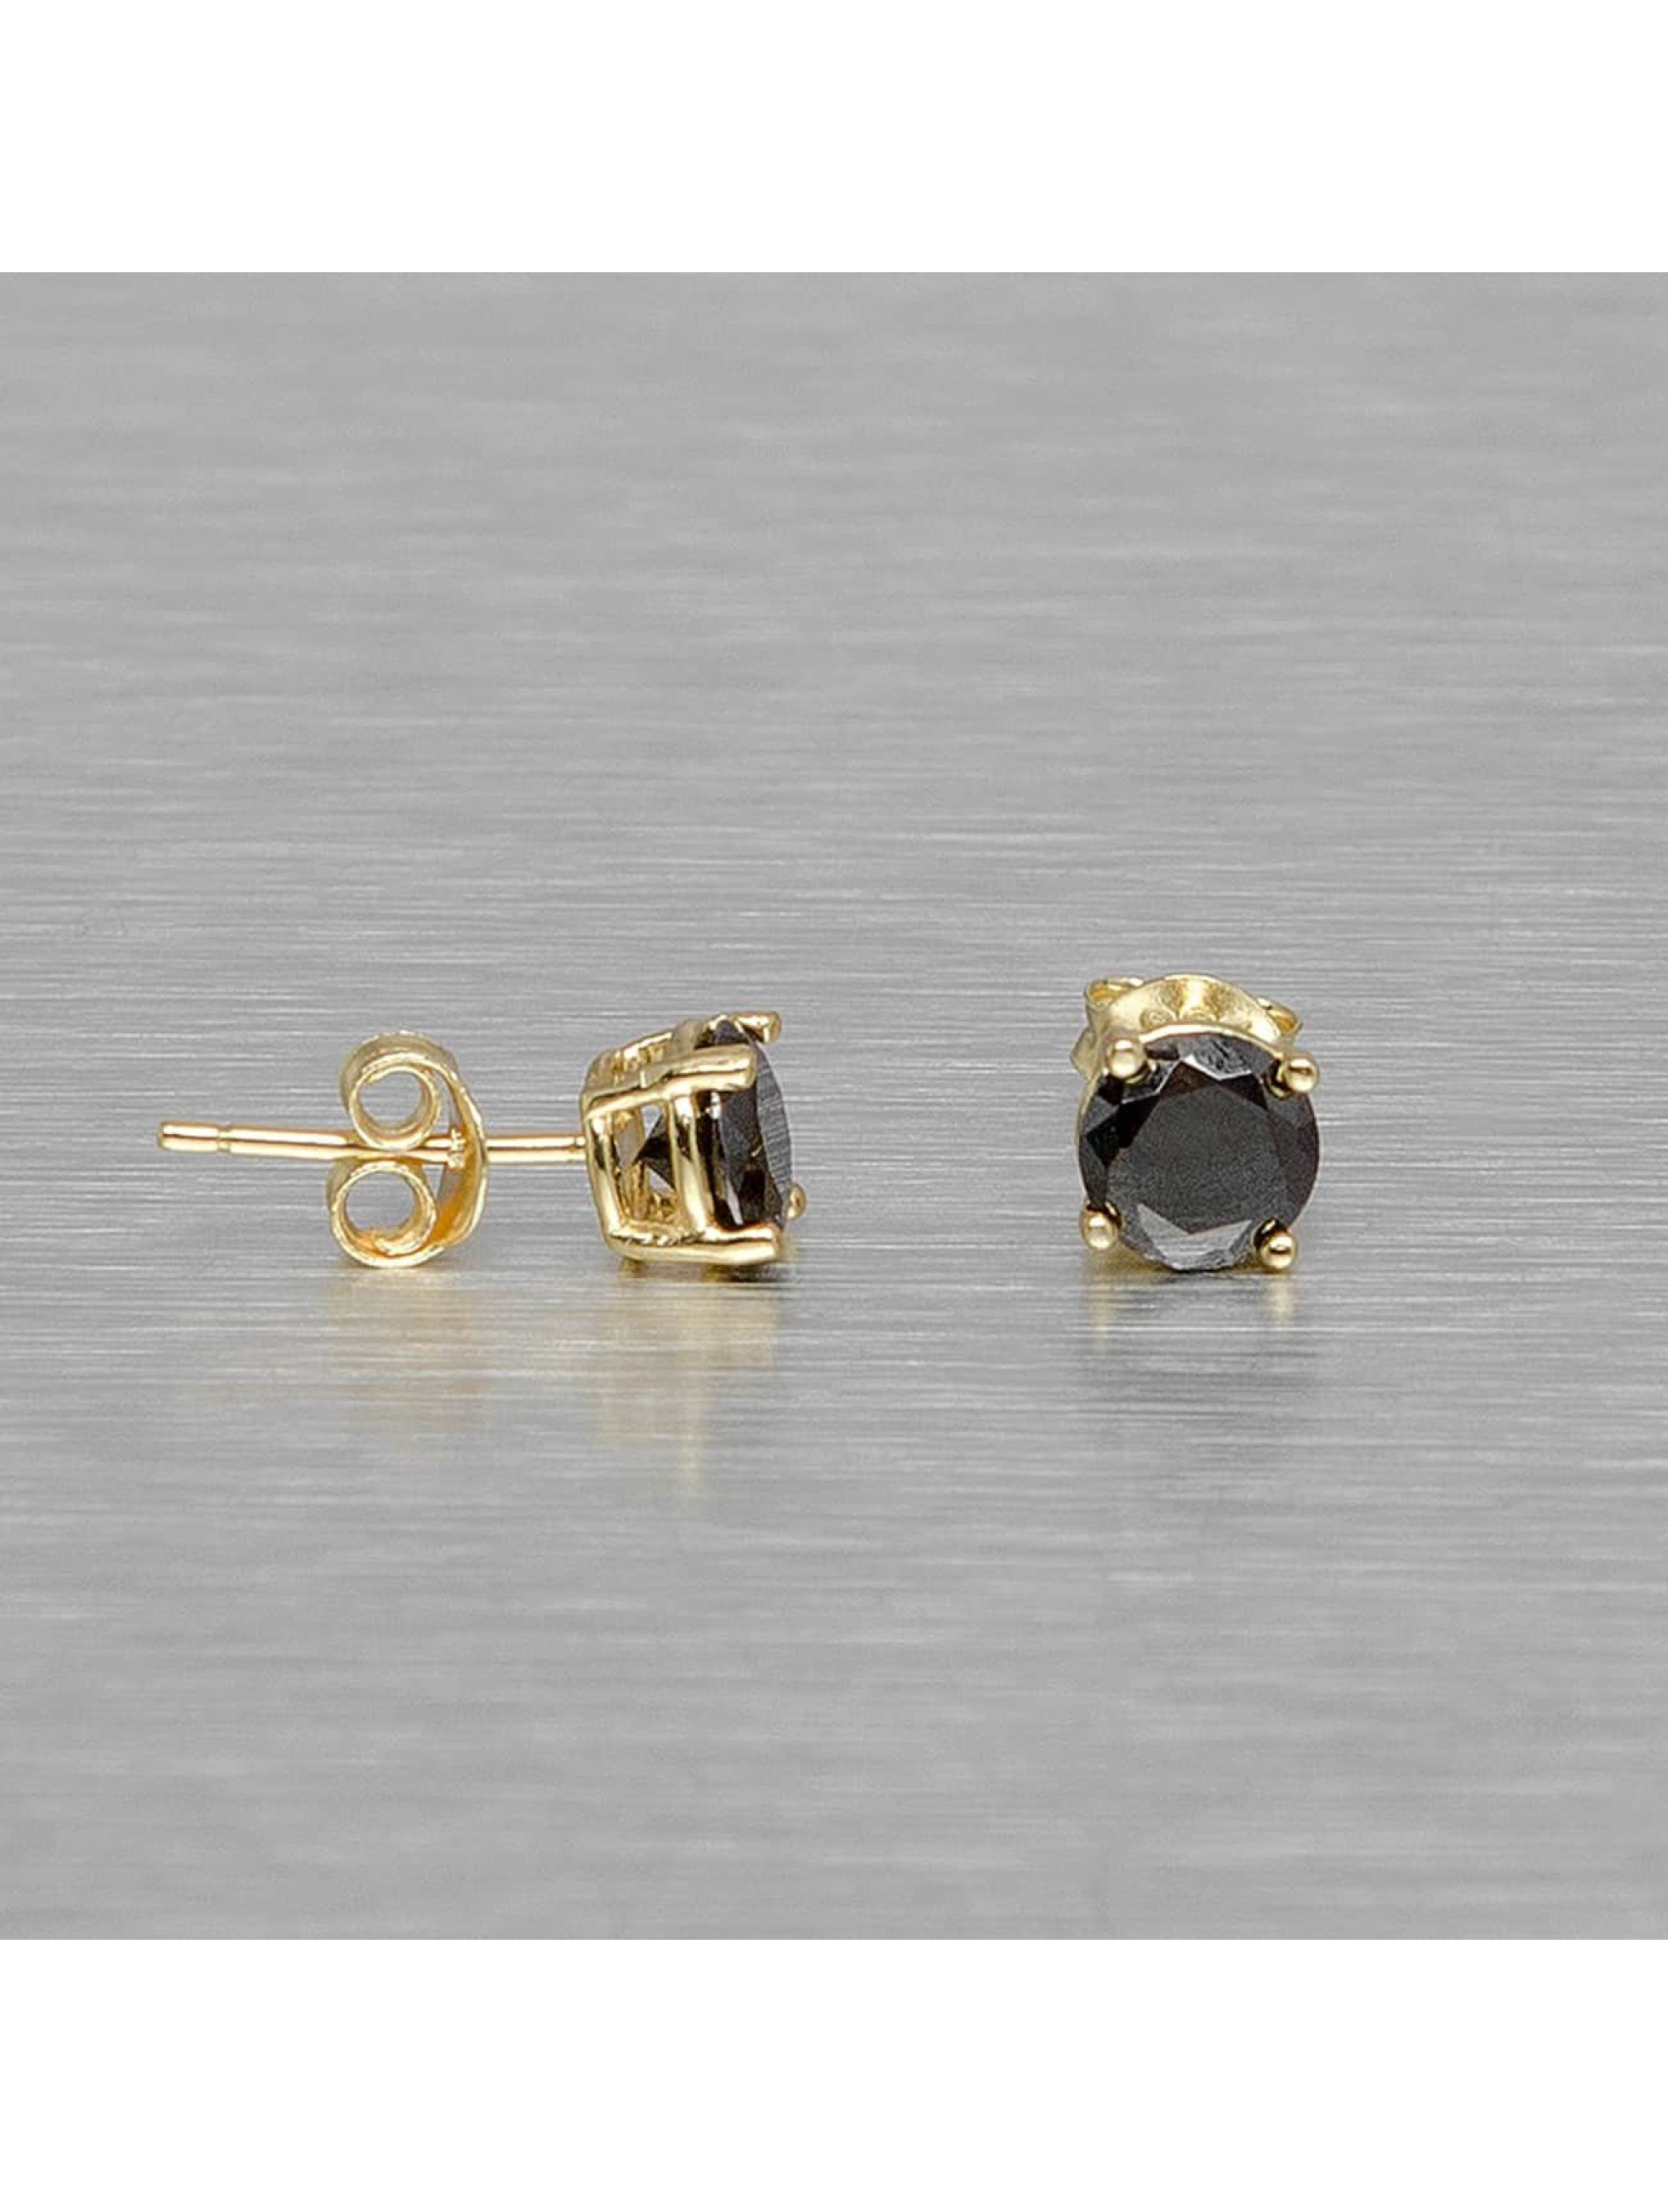 KING ICE Männer,Frauen Ohrringe Gold_Plated 6mm 925 Sterling_Silver CZ Black in goldfarben